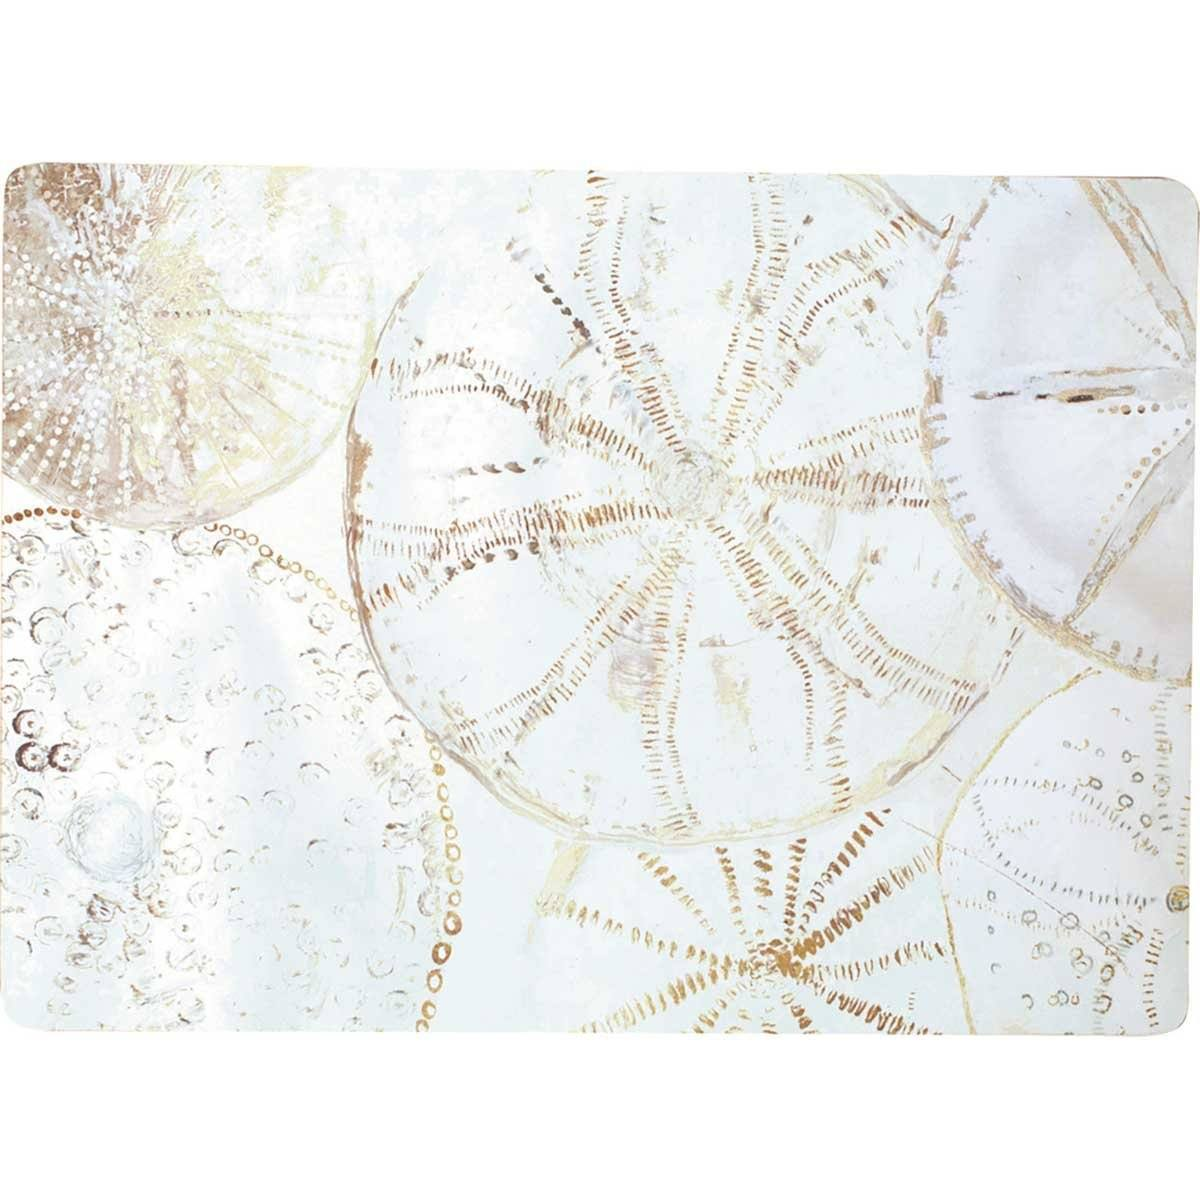 Coastal Shells Placemat Set 4